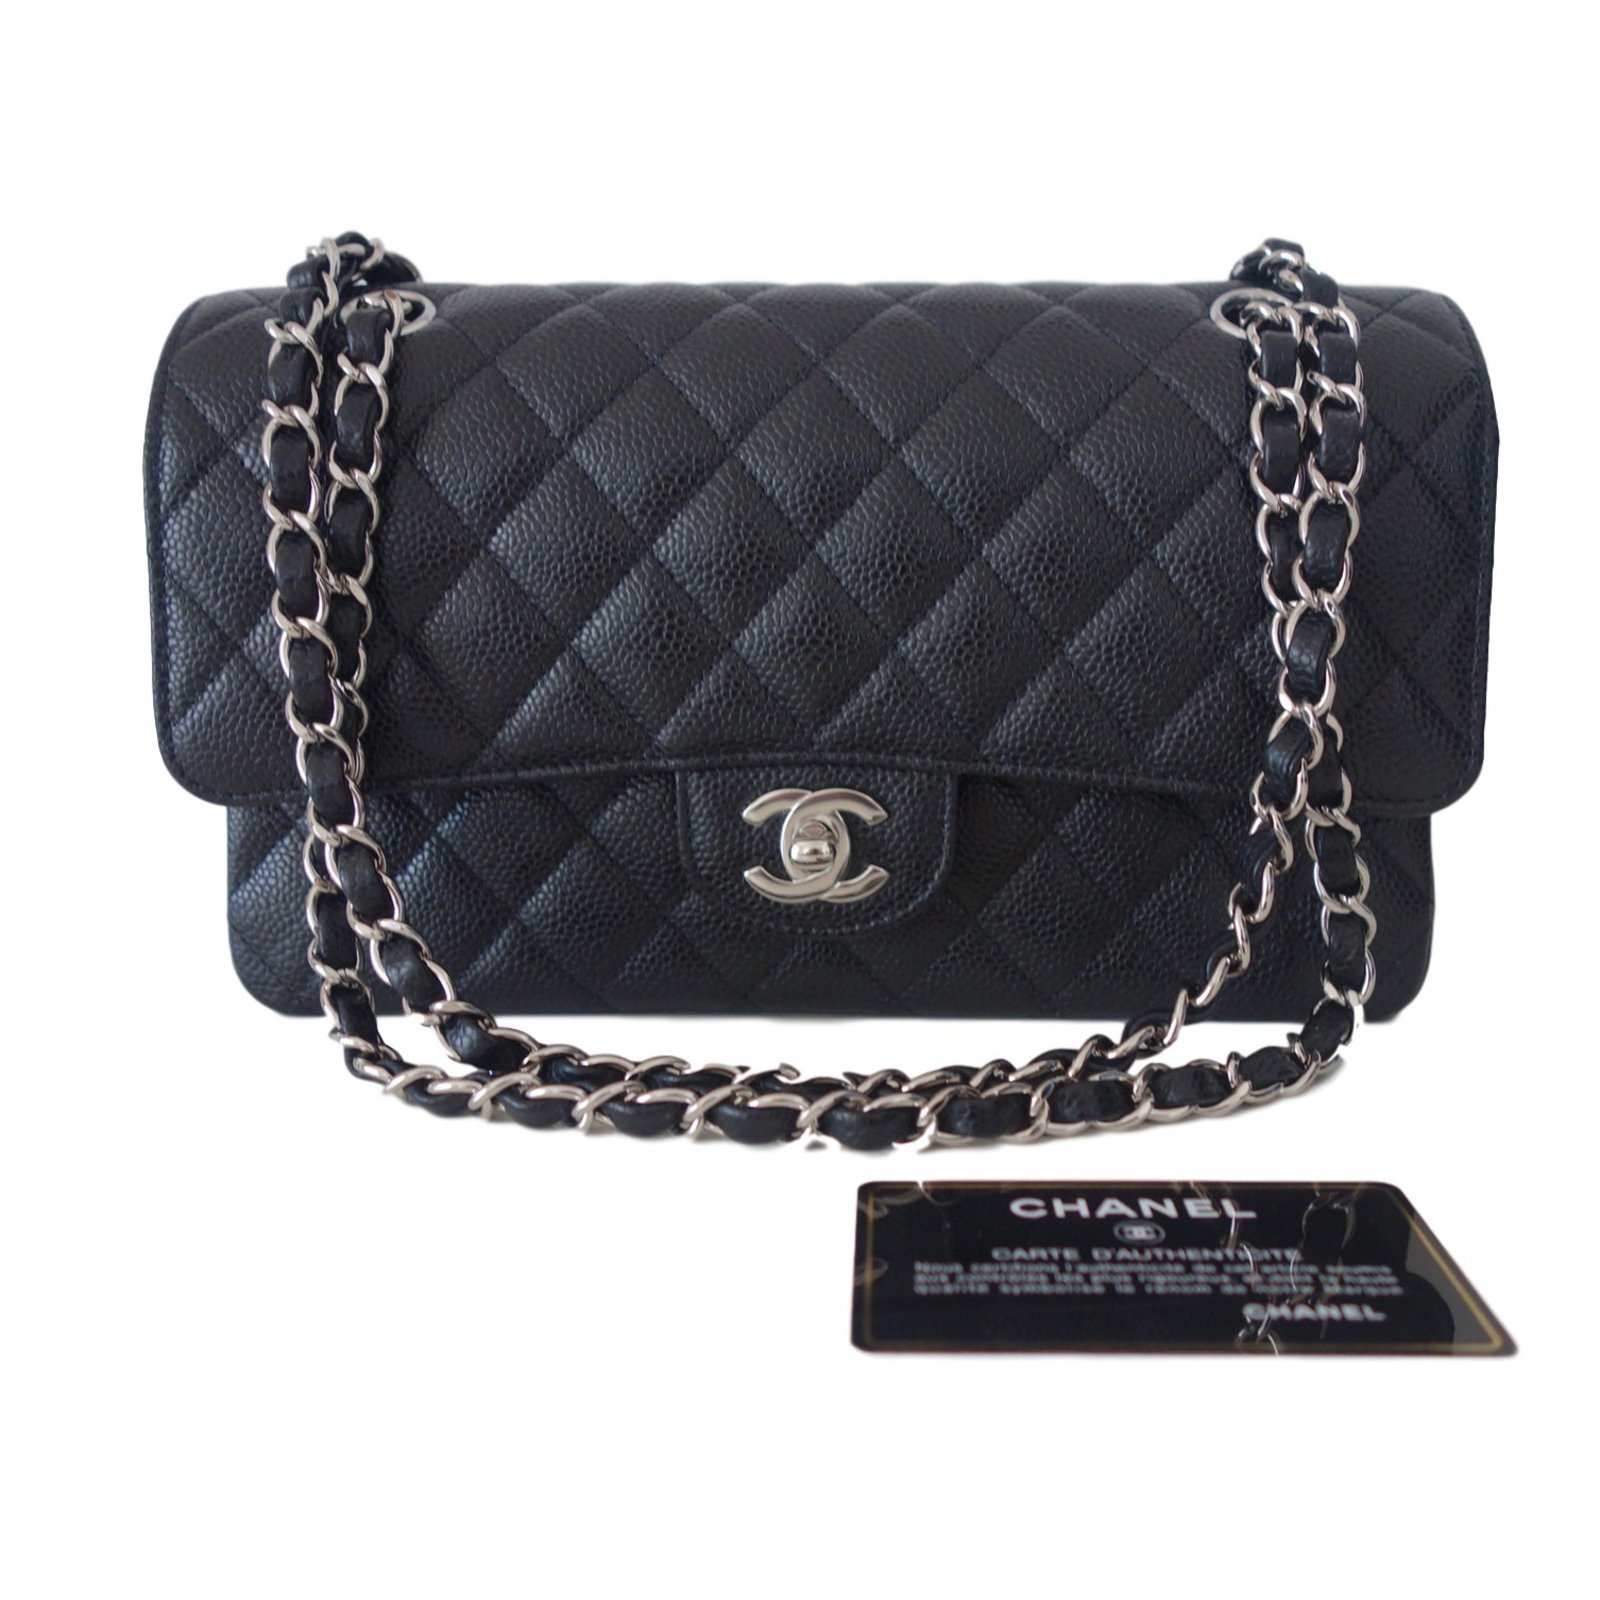 Chanel Classic Handbags Leather Black Ref 38607